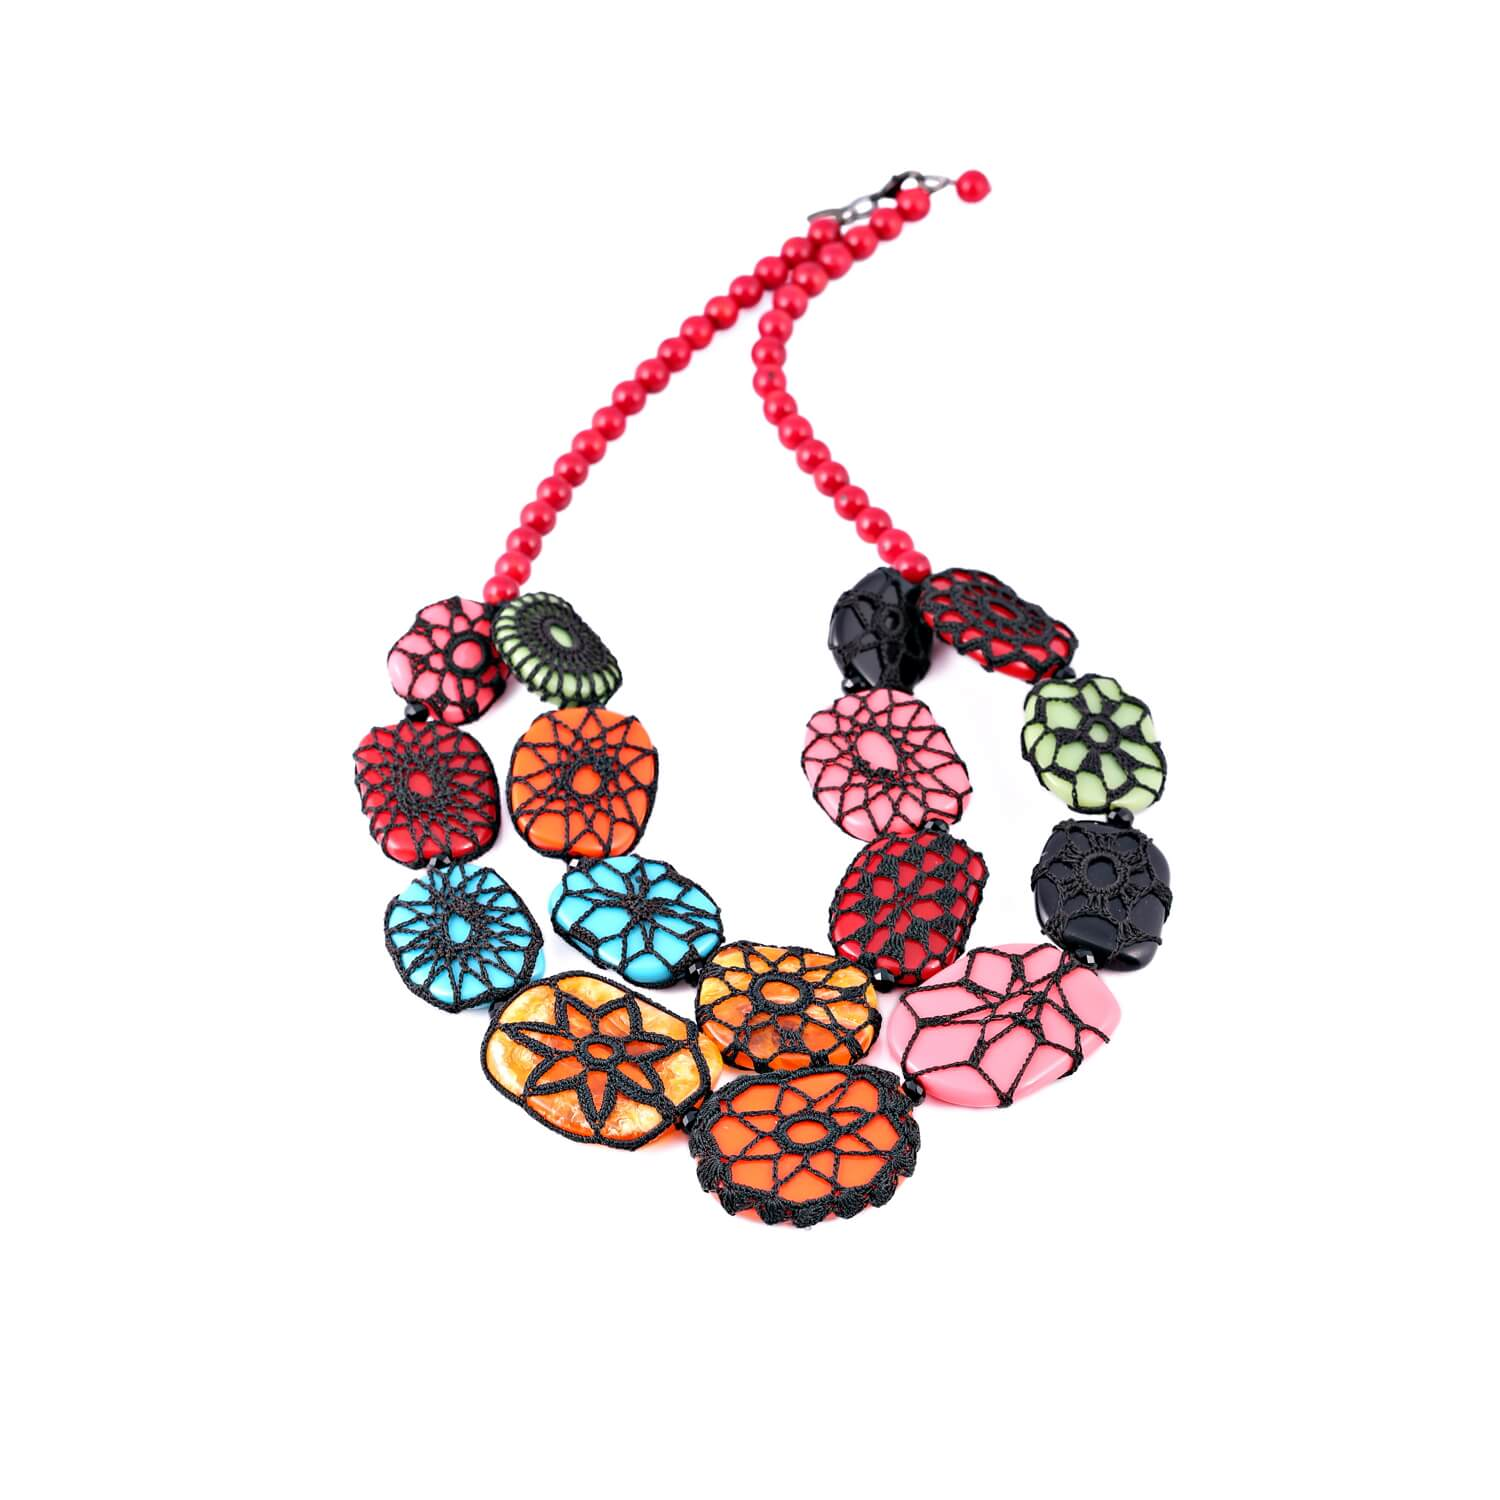 Queen of Sheba House of Cards Multi-Colour Necklace